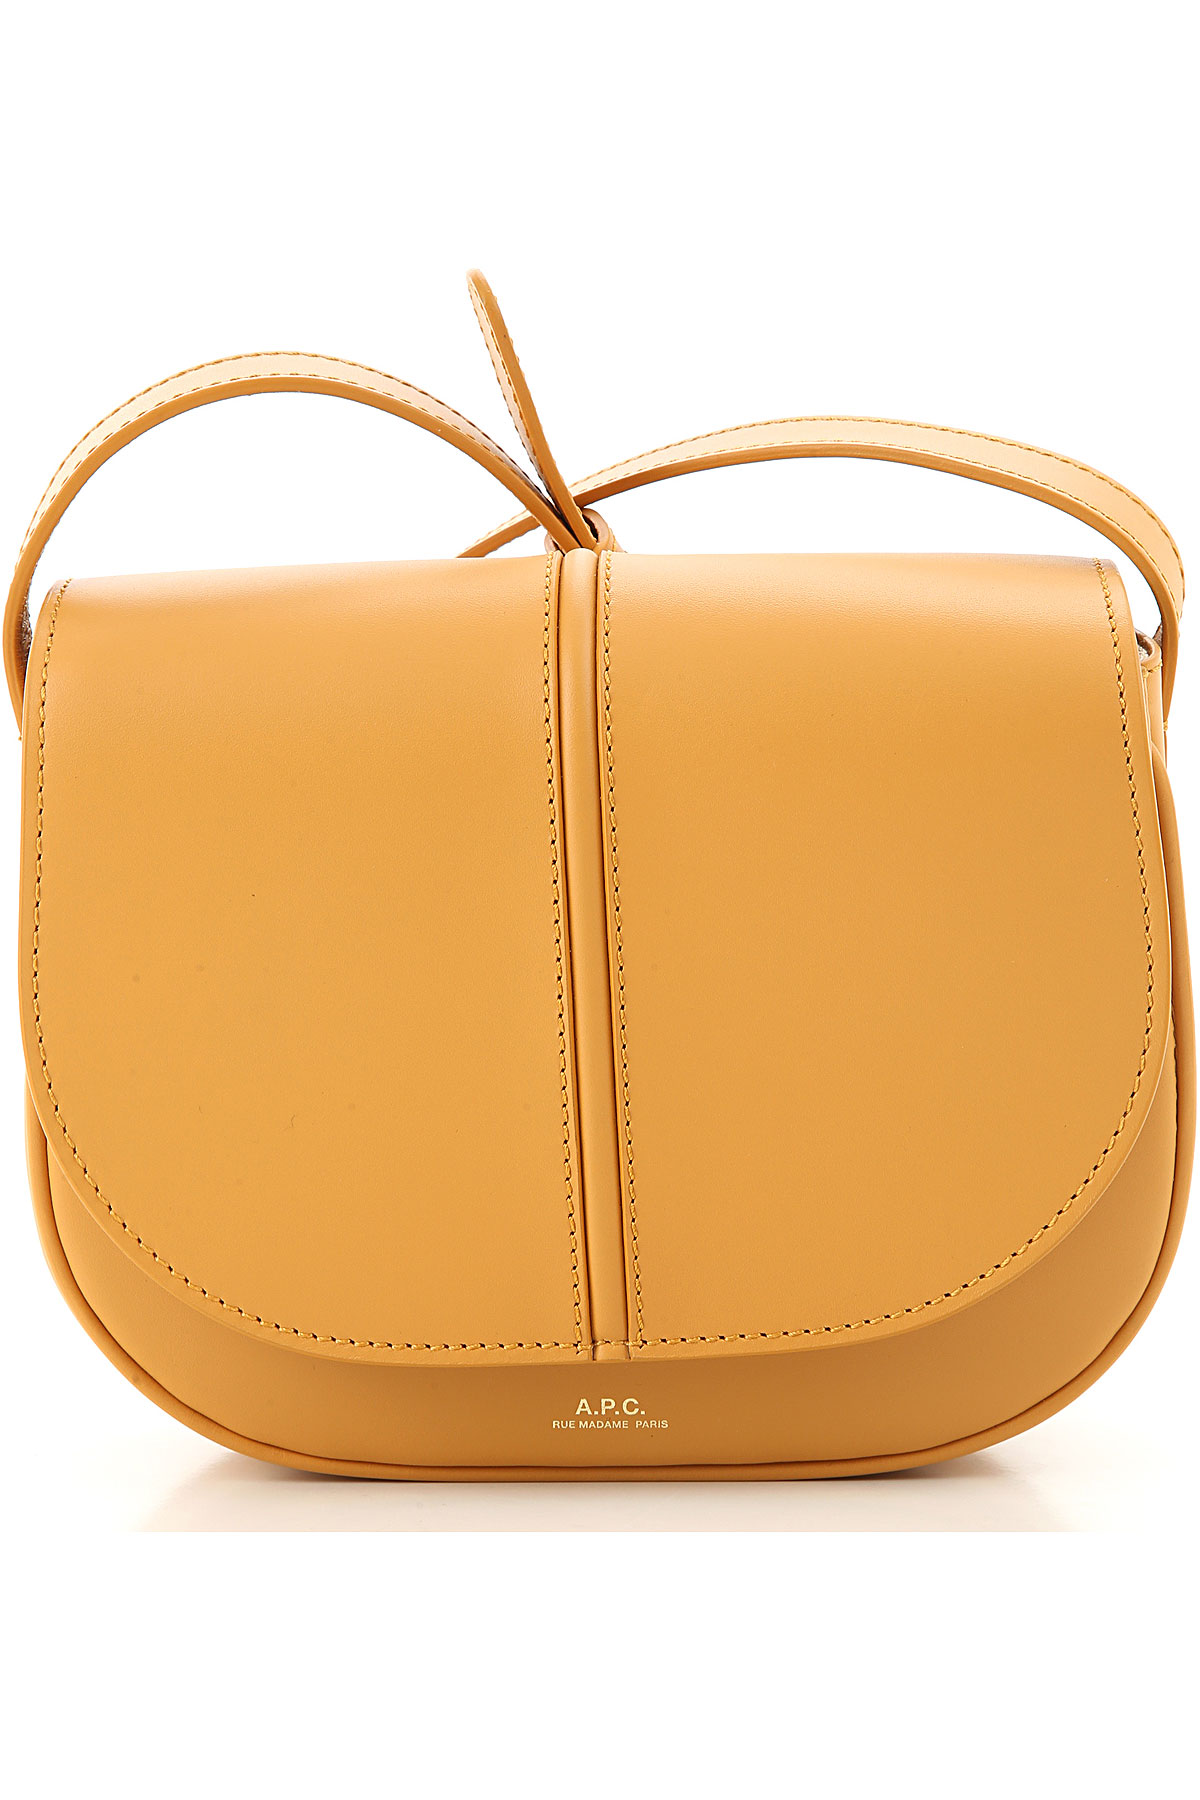 A.P.C Shoulder Bag for Women On Sale, Yellow, Leather, 2019